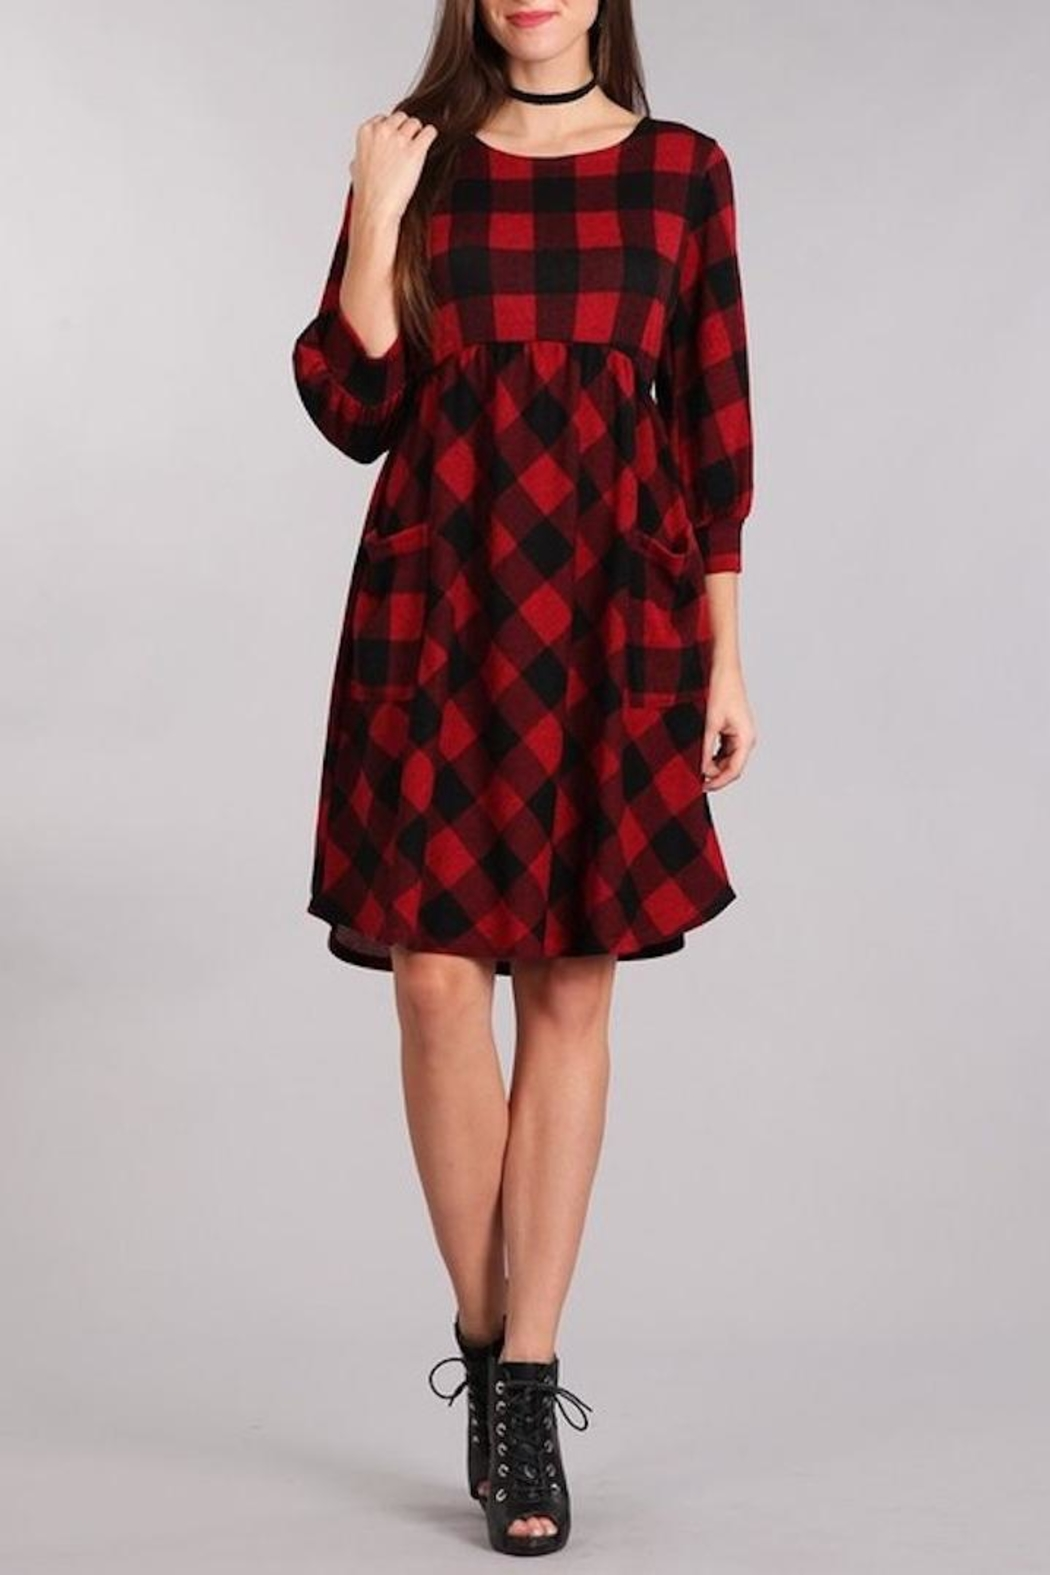 Chris & Carol Perect Plaid Dress - Main Image